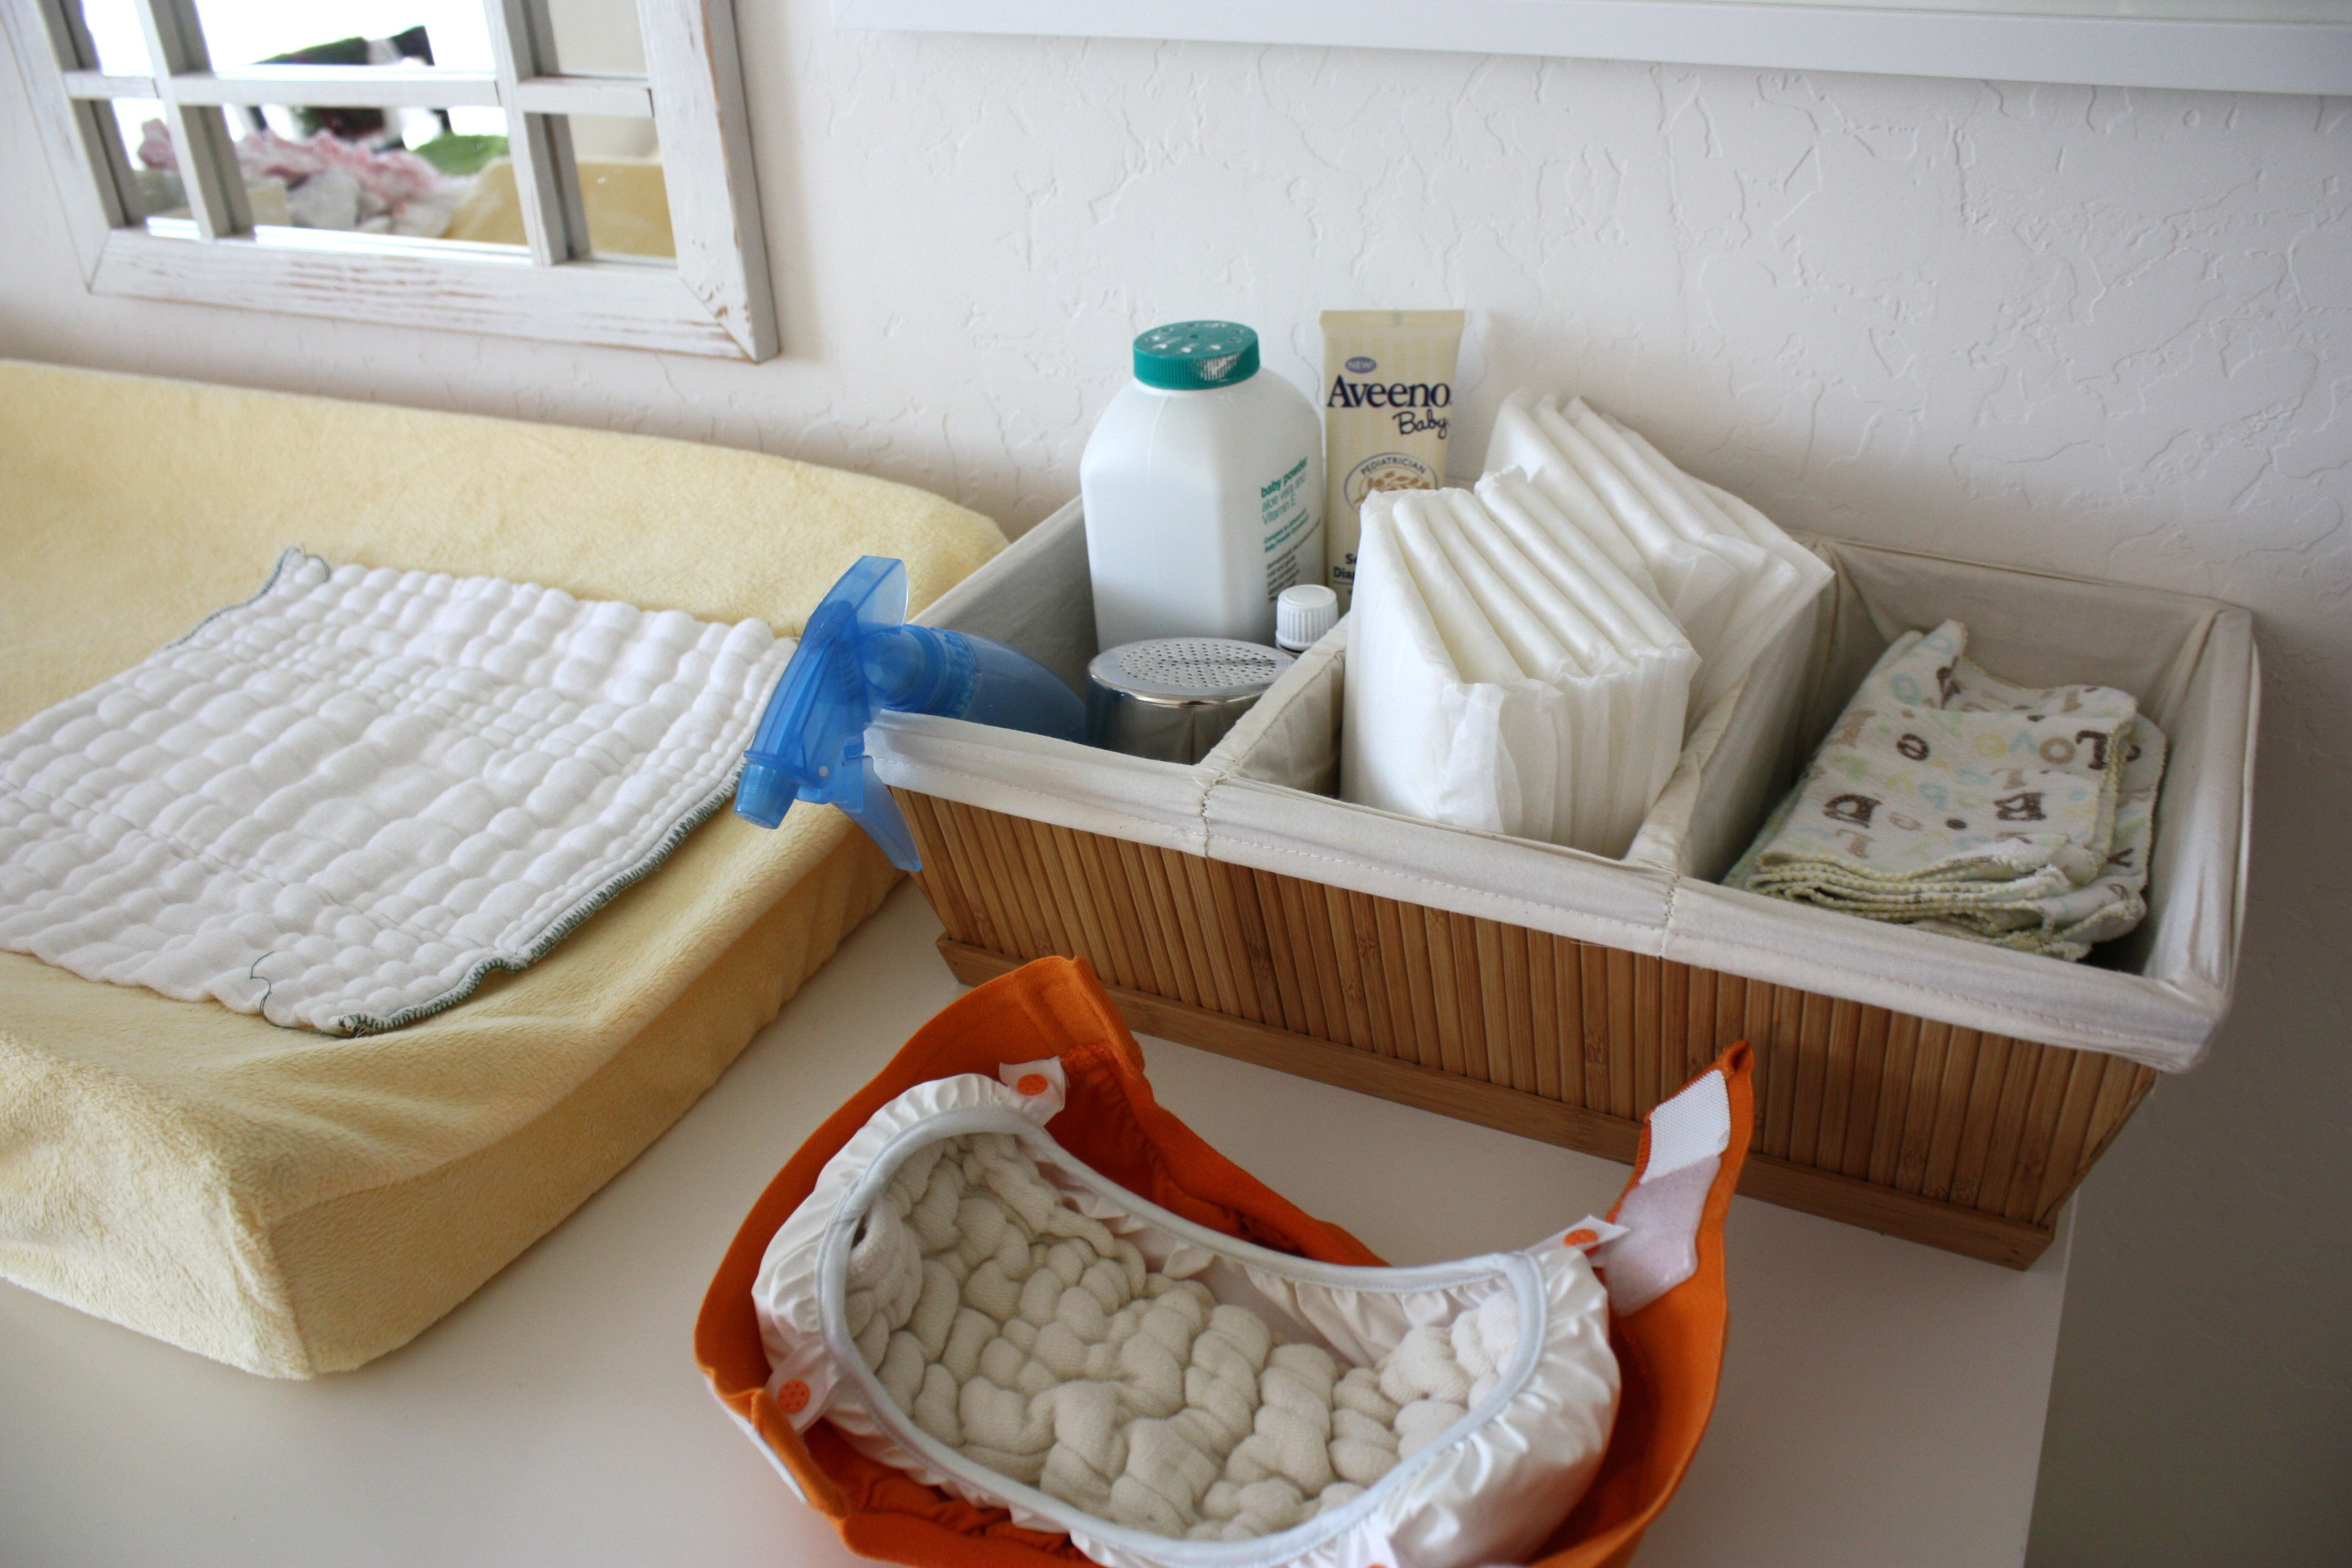 8 Tricks To Make Diaper Changing Easier And More Enjoyable